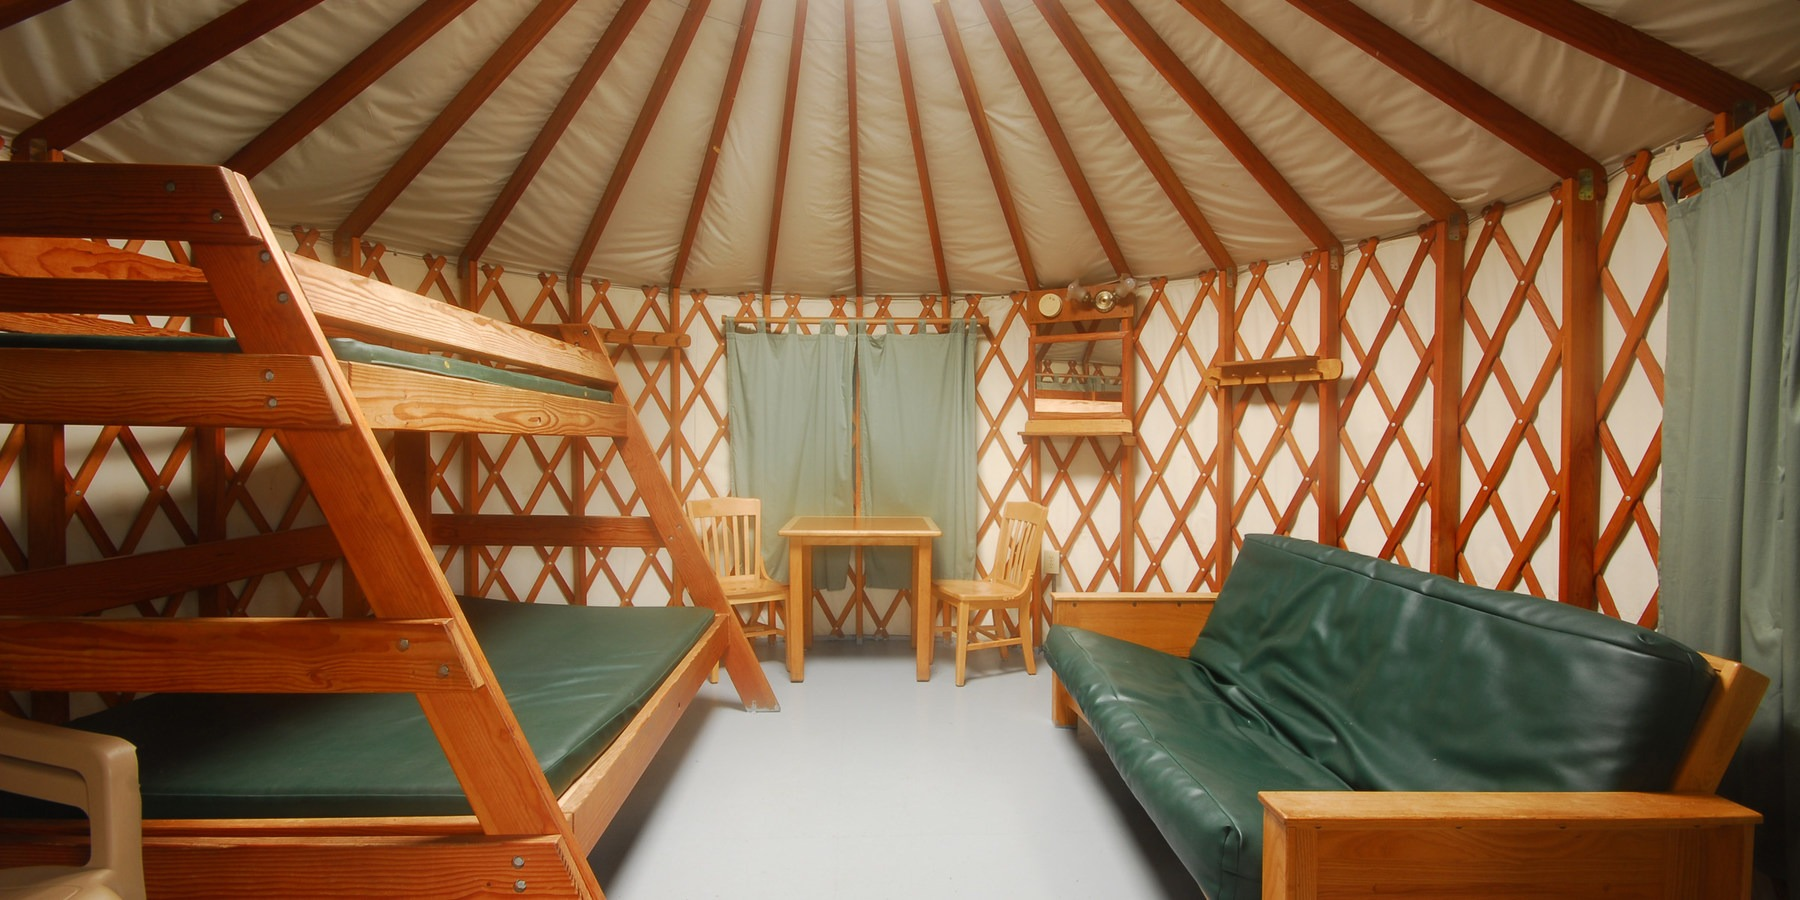 Very Impressive portraiture of Typical yurt interior at South Beach State Park Campground.  14  with #B04C13 color and 1600x800 pixels